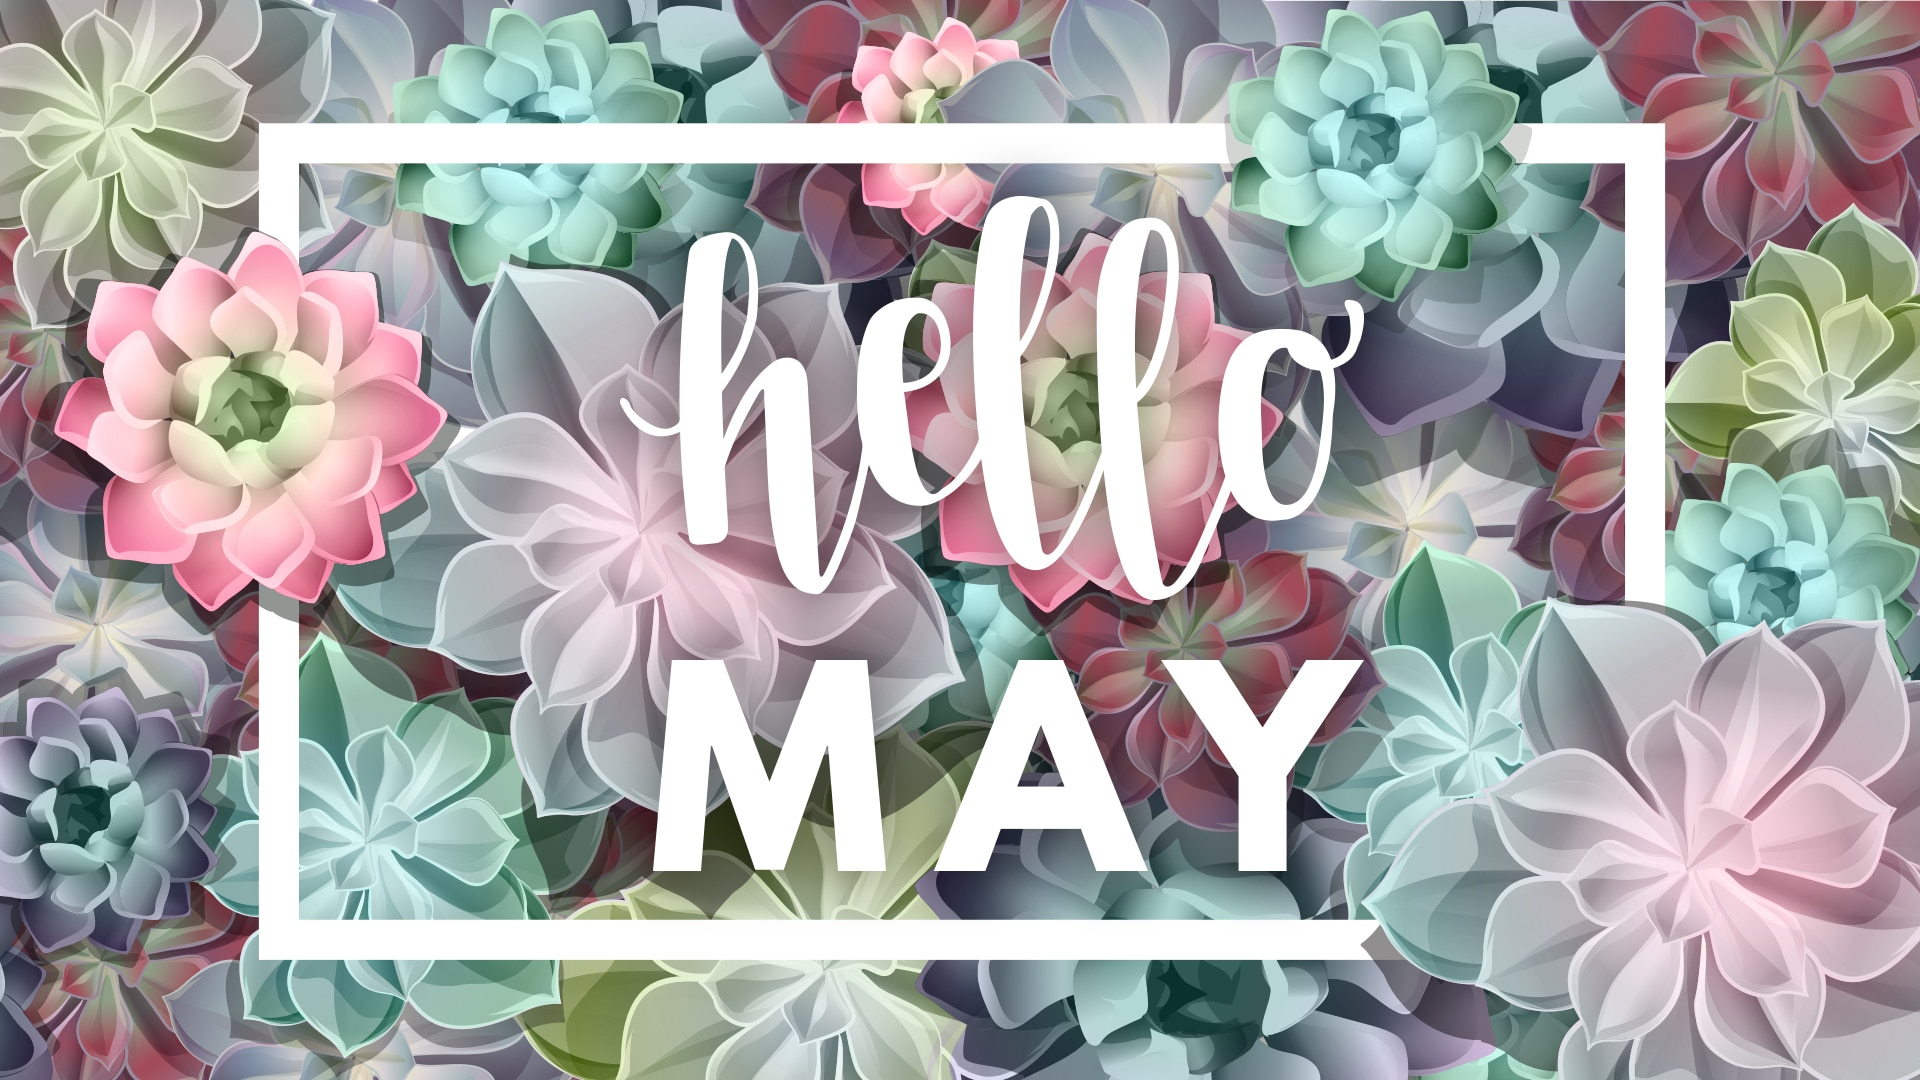 May 2019 Wallpaper Flicker Leap